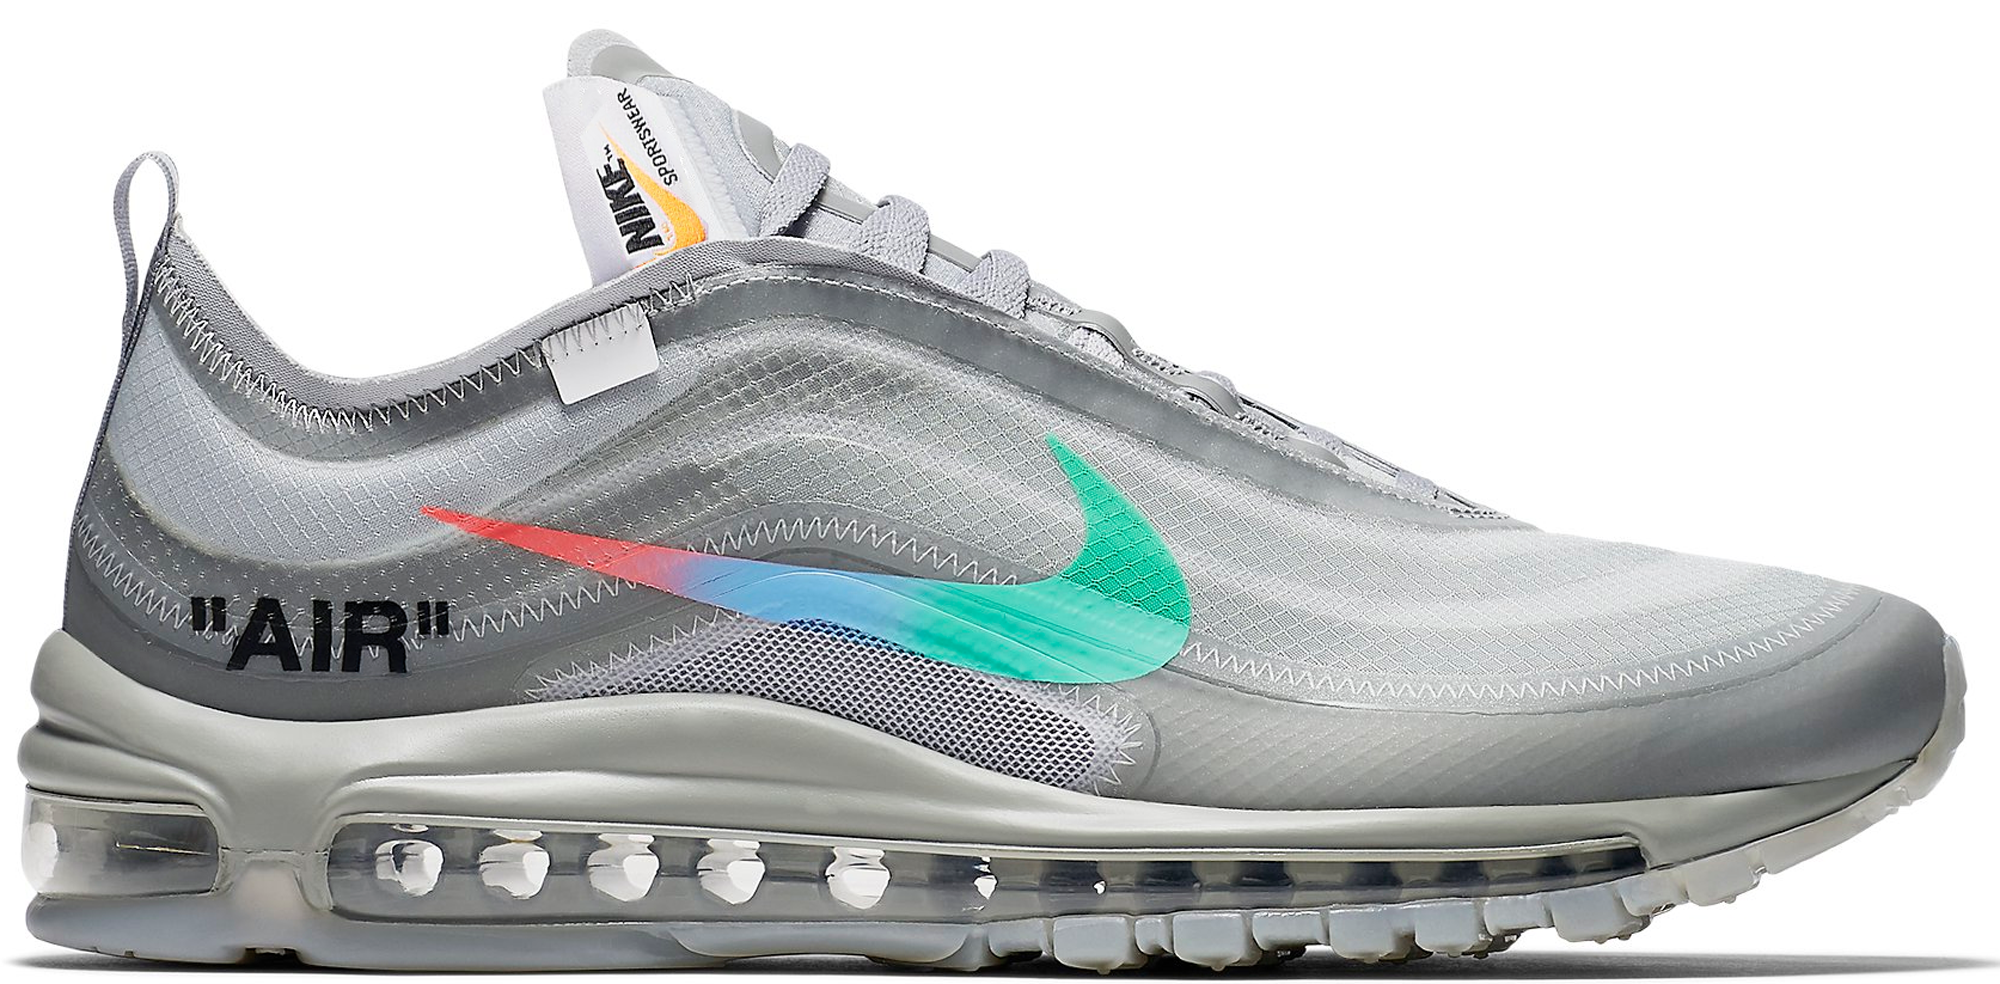 Off-White Nike Air Max 97 Menta - StockX News